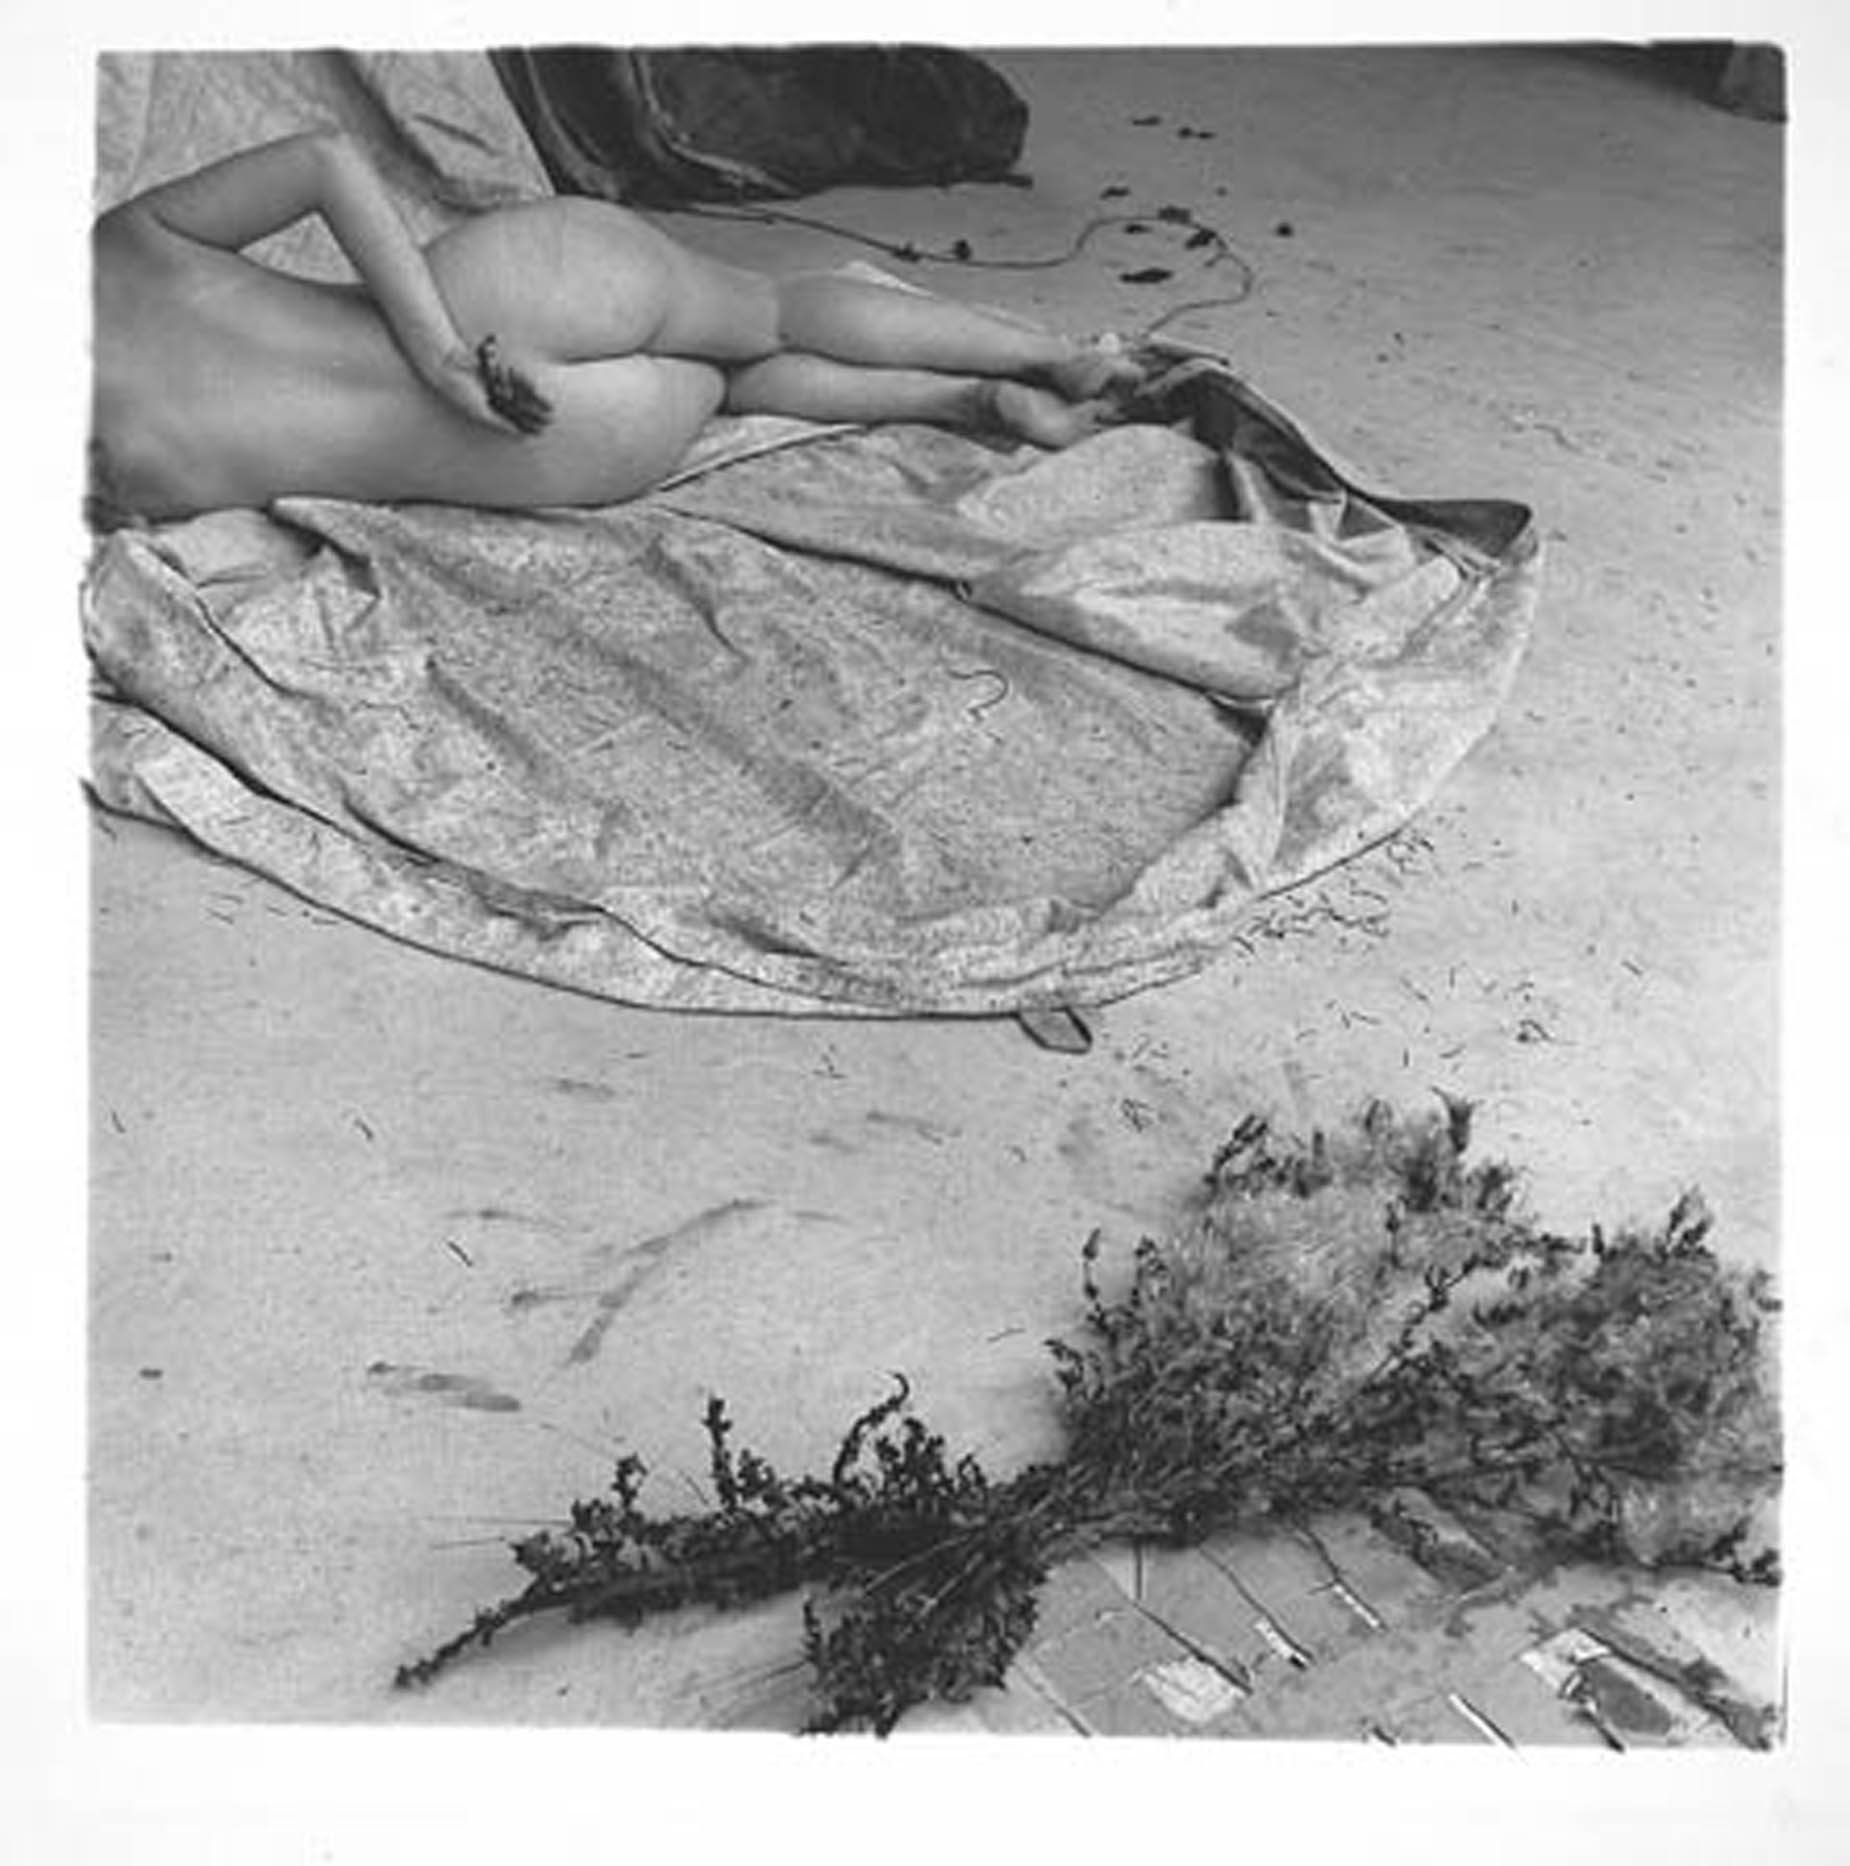 Francesca Woodman - P051.1 Untitled - Providence, 1975-78 - courtesy Galleria Massimo Minini, Brescia